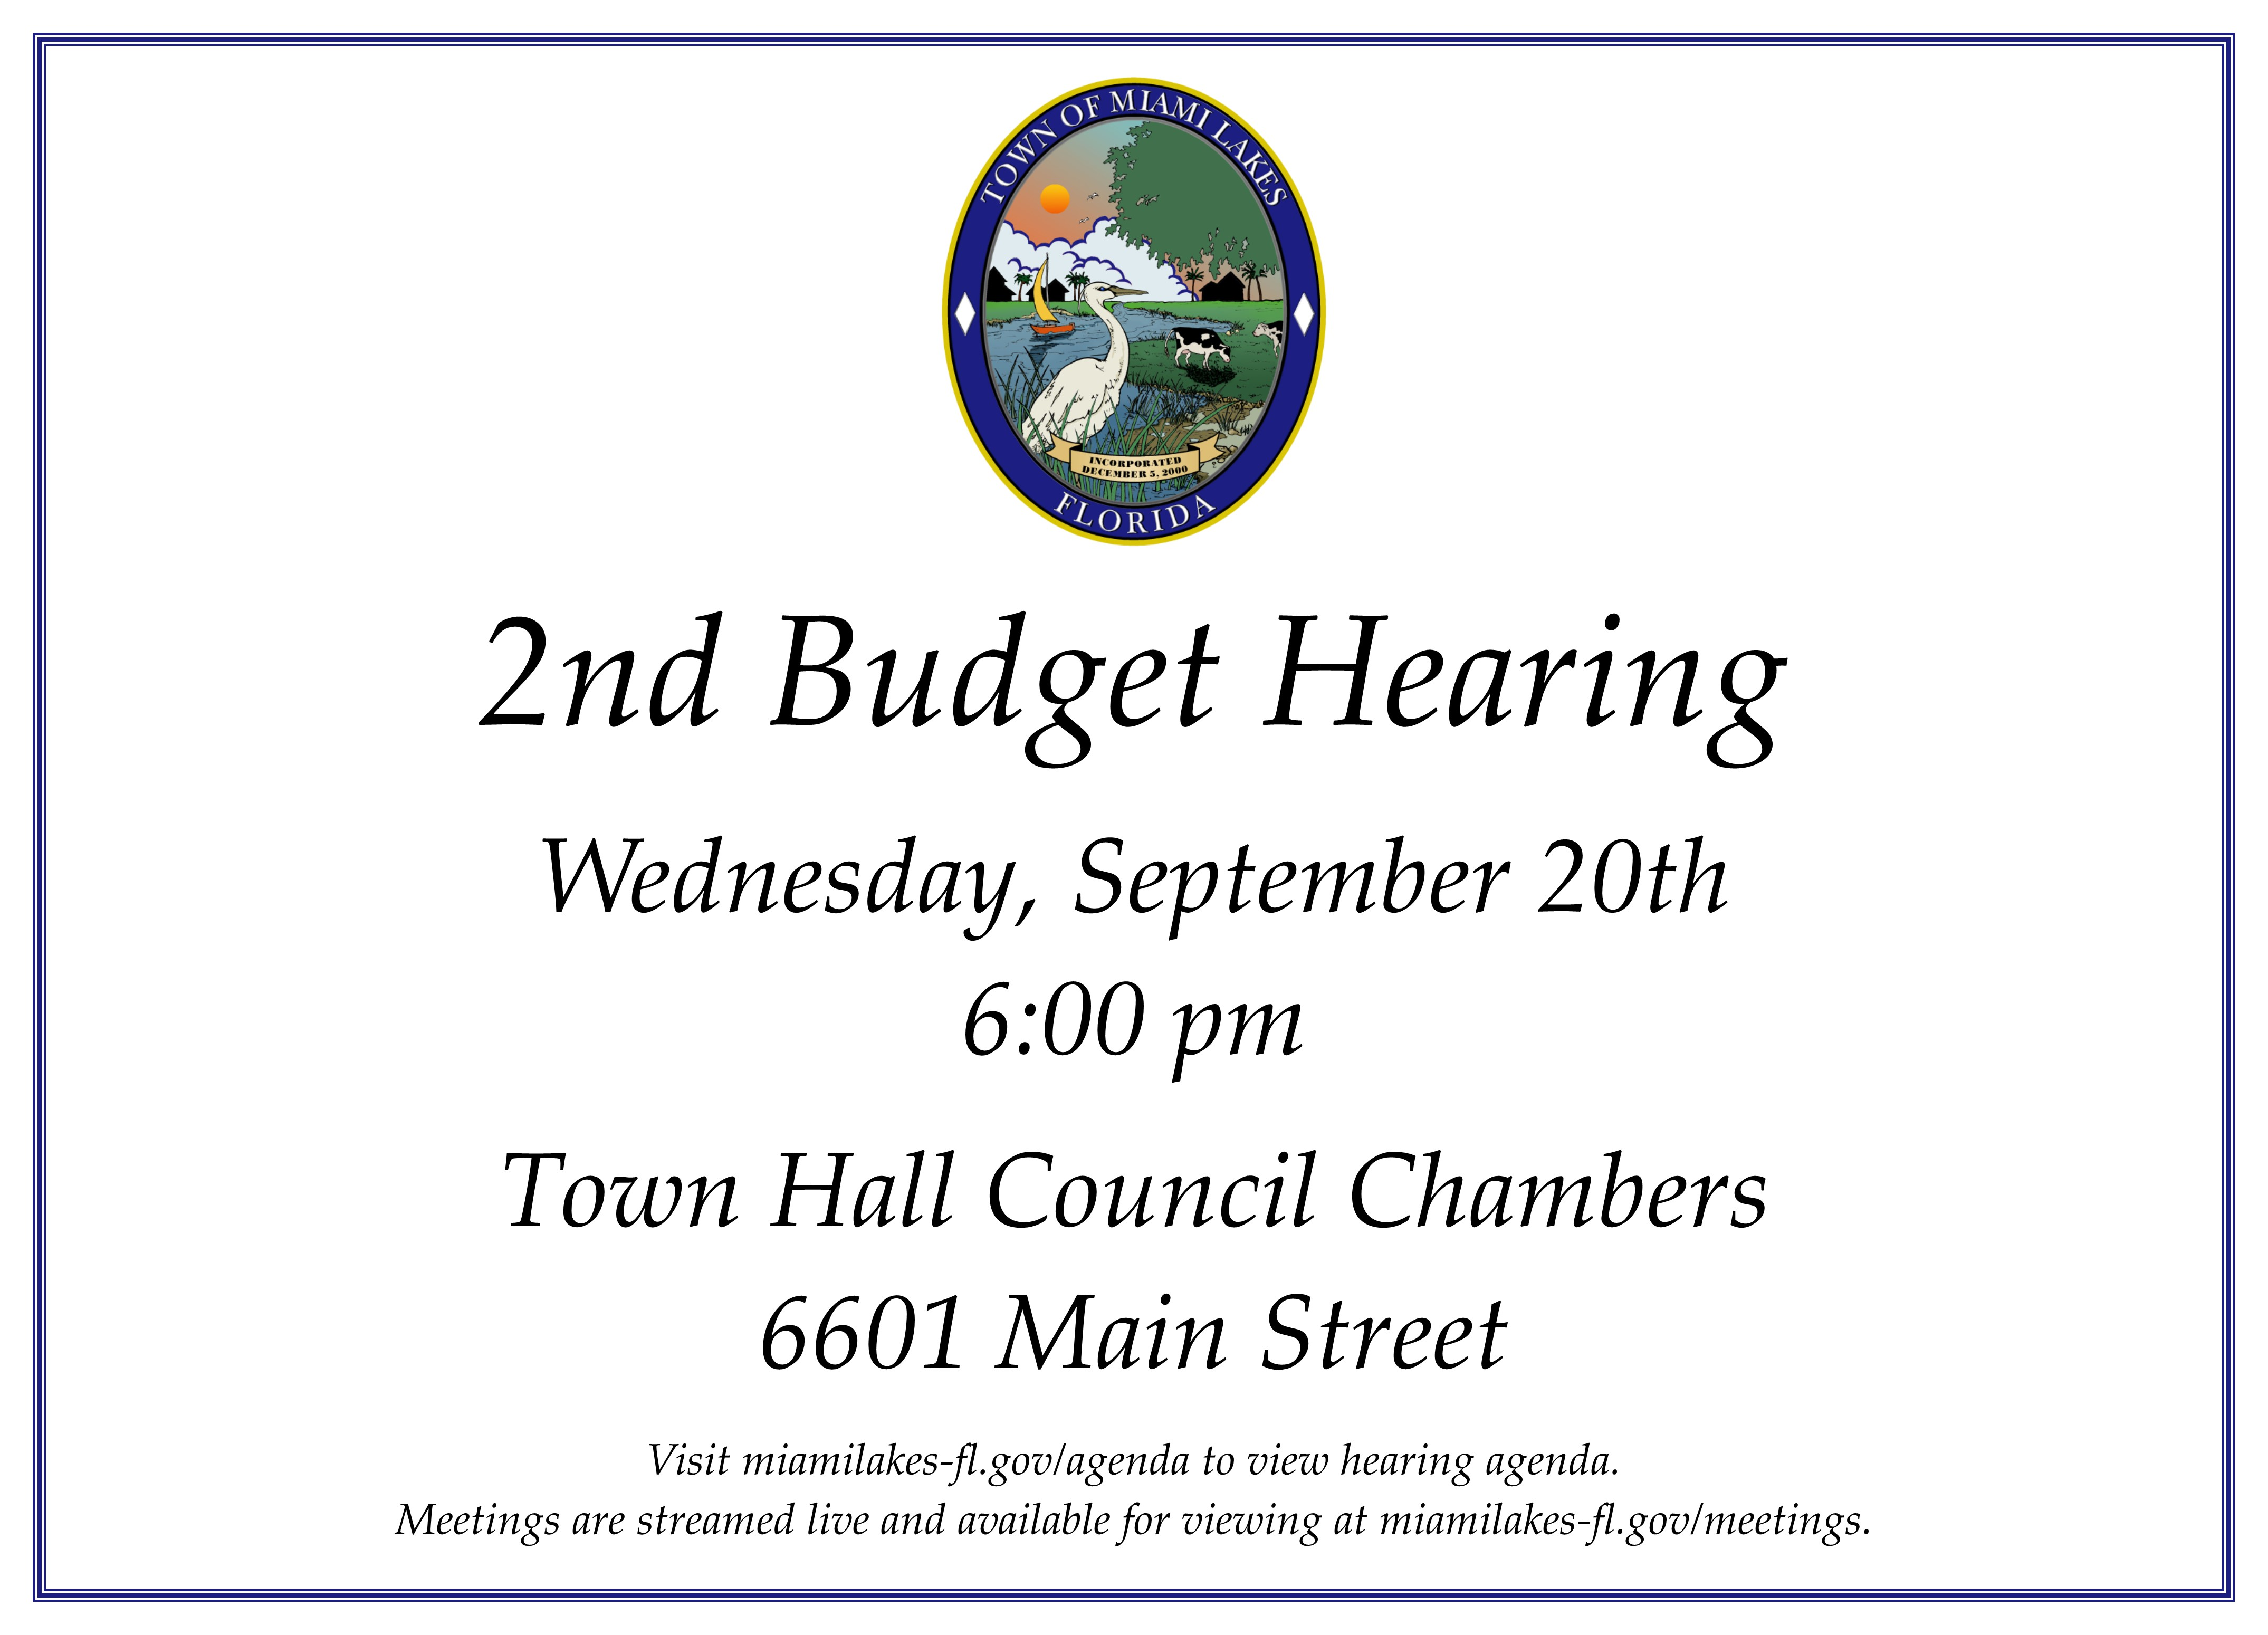 2nd Budget Hearing 09.20 Demo